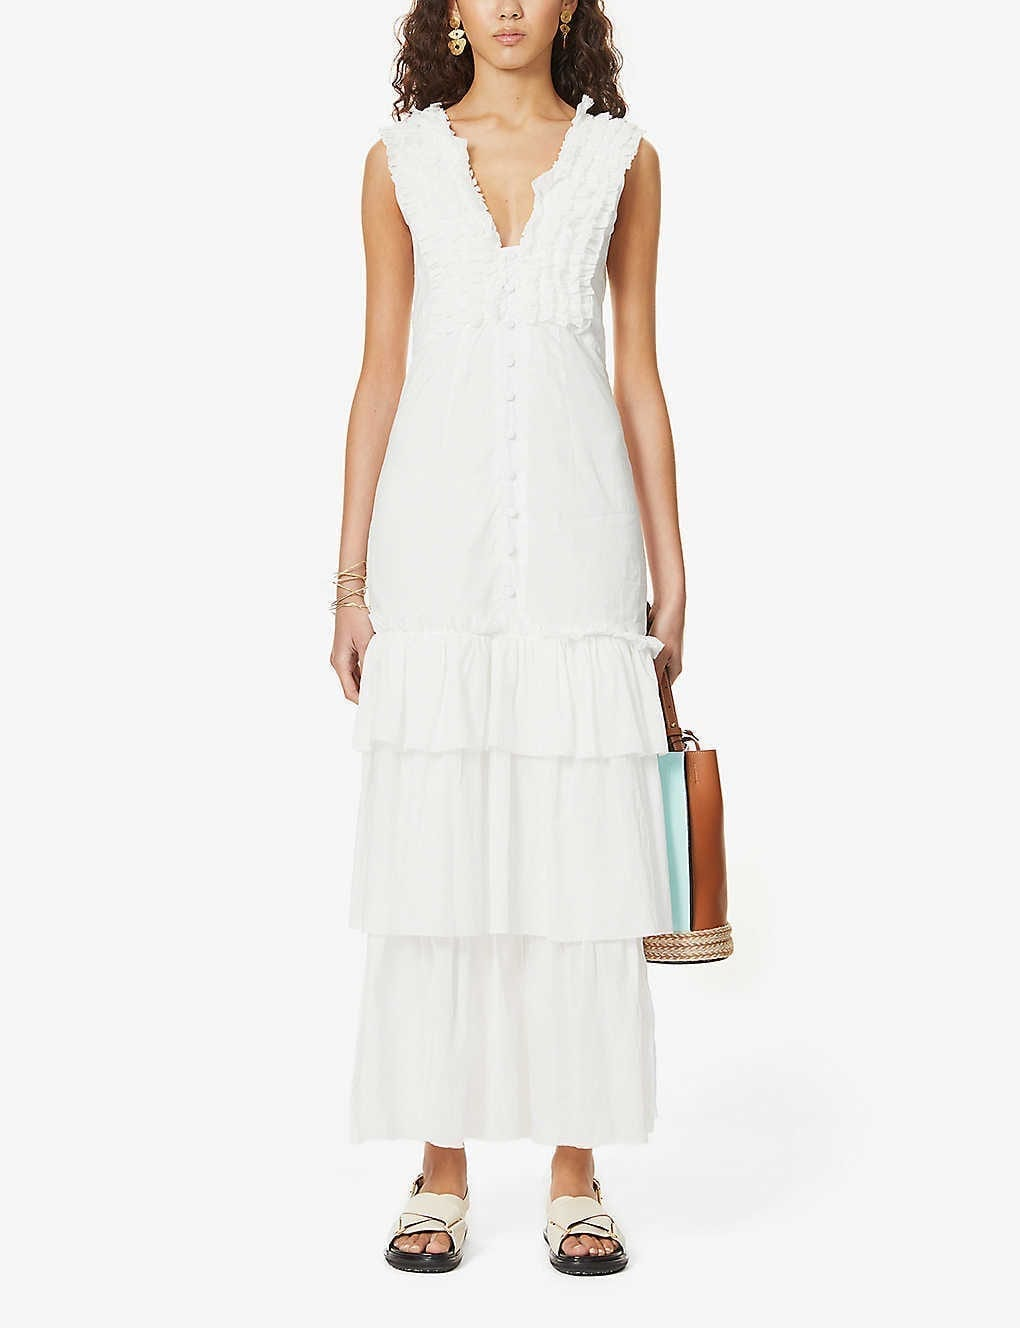 JOSLIN Stacey Tiered Cotton Maxi Dress